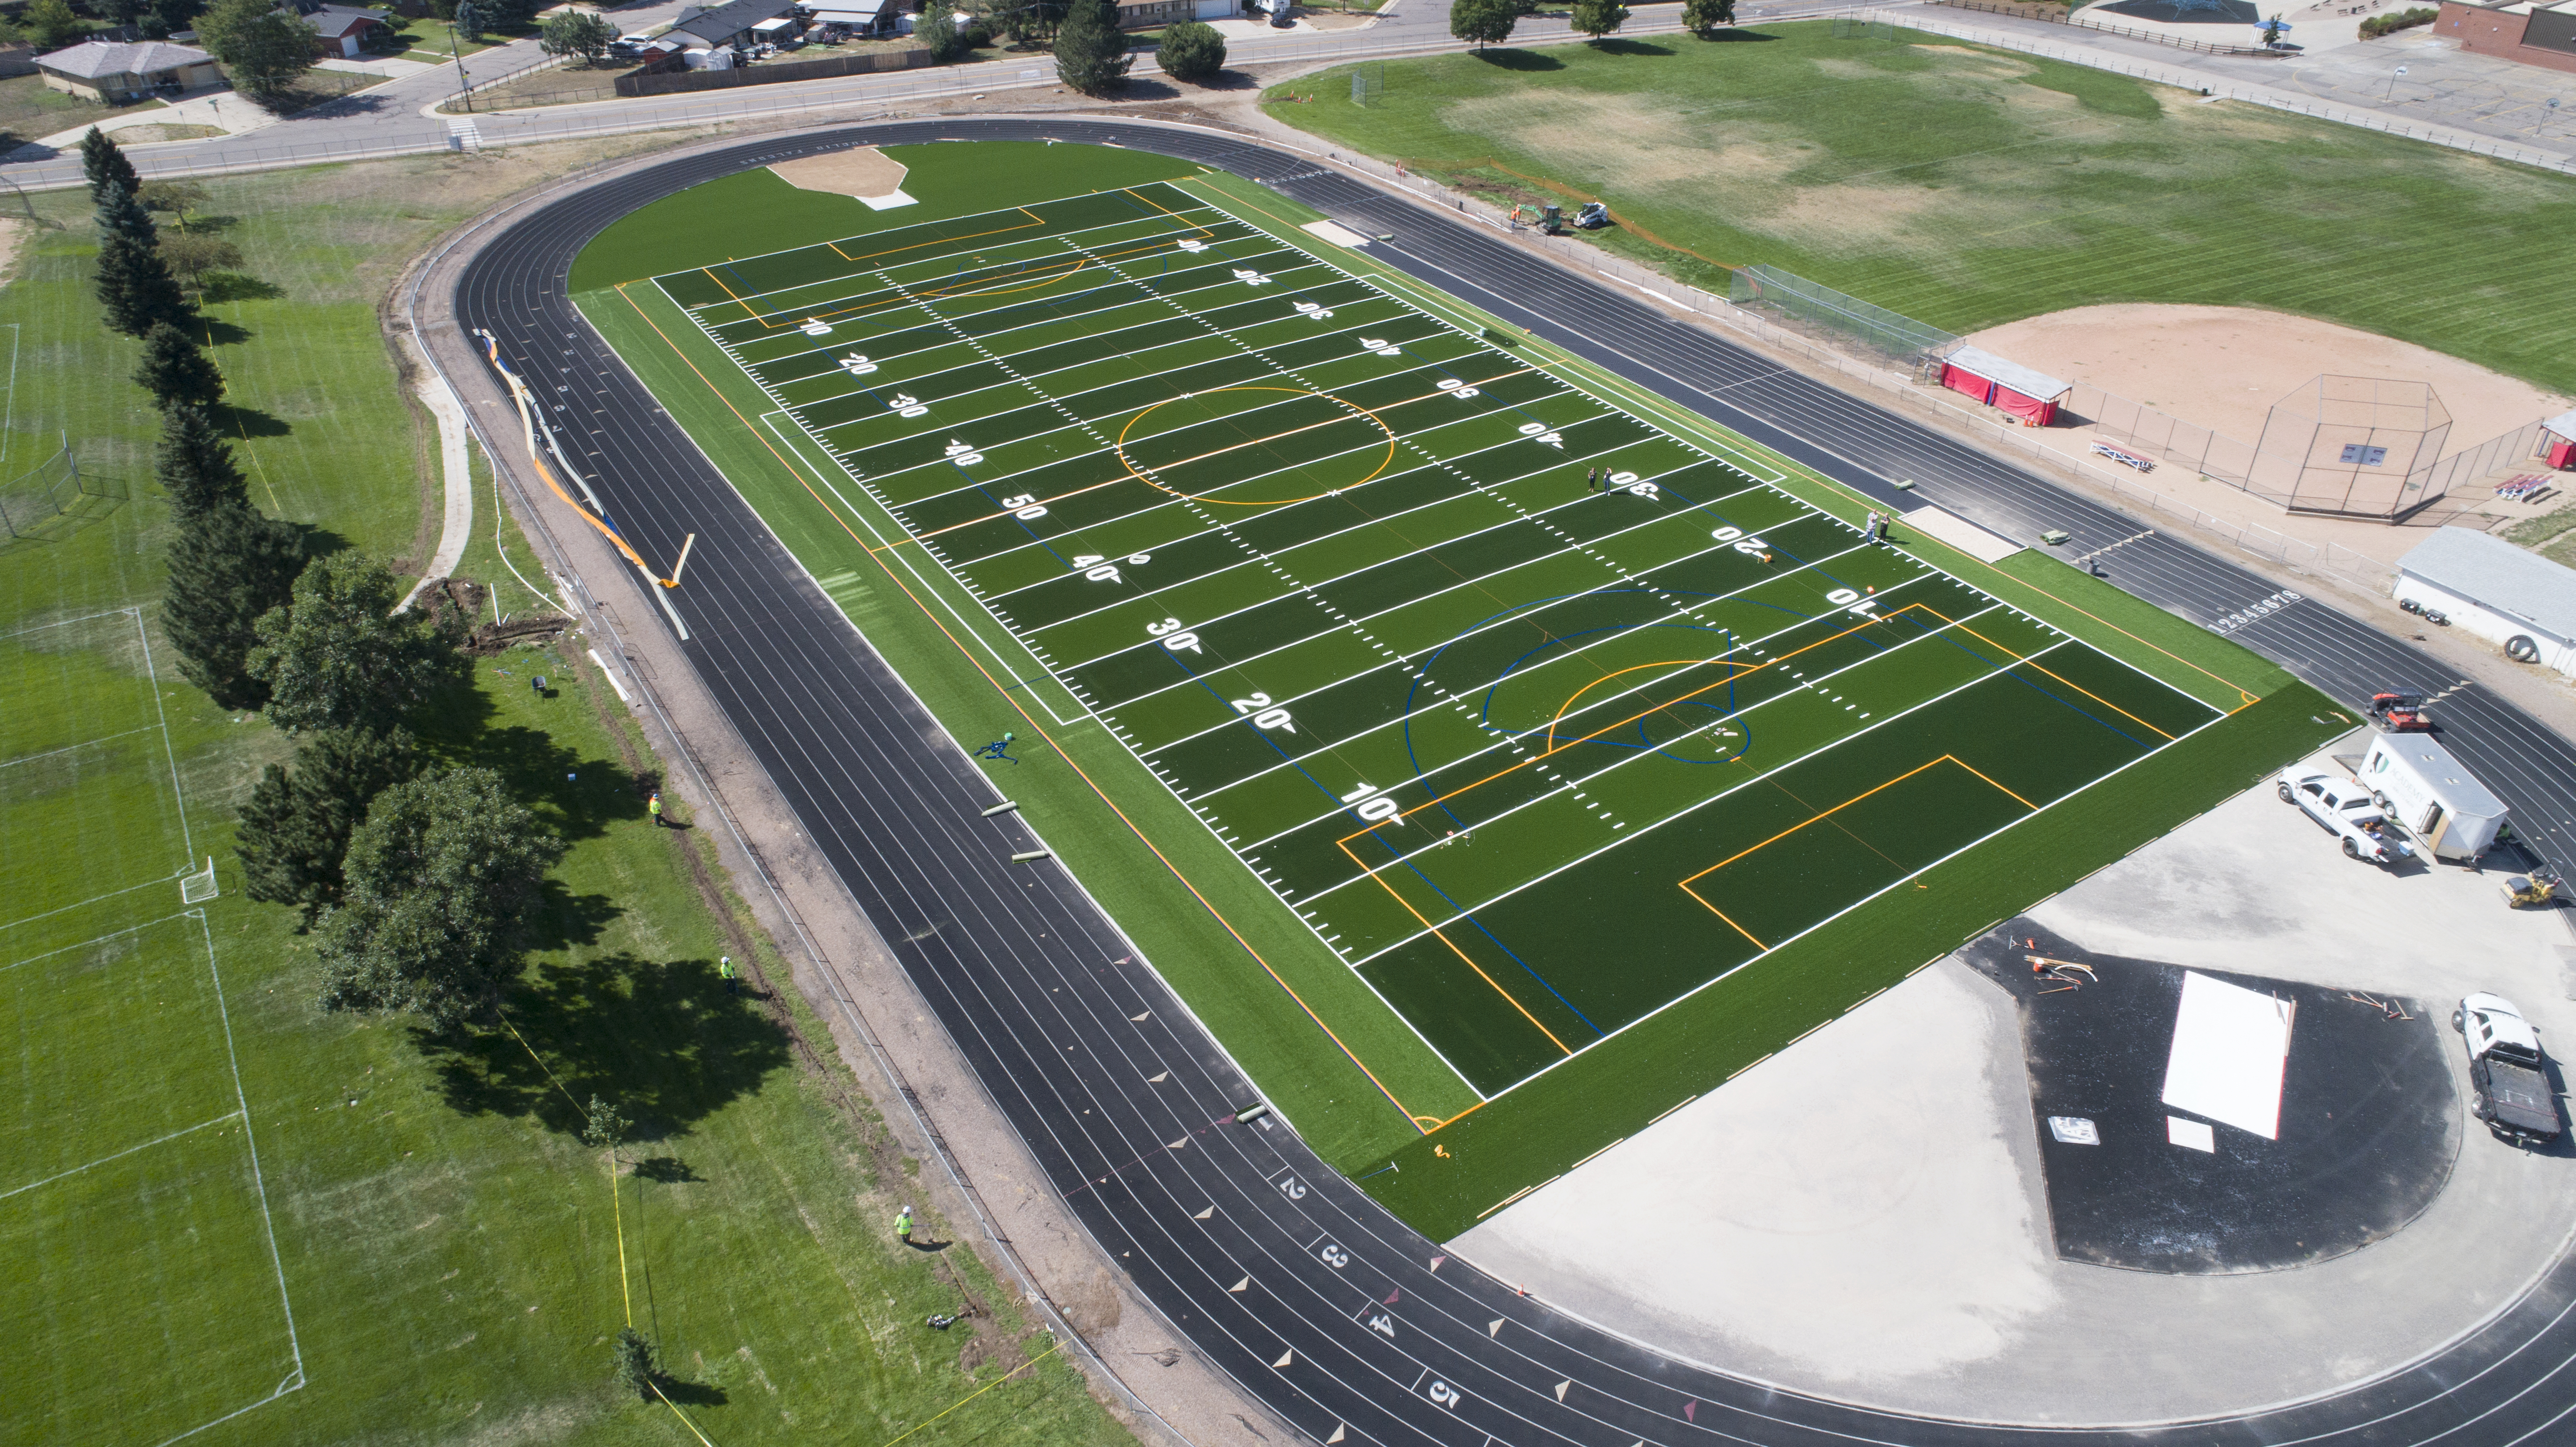 EMS field in final stages of completion August 30, 2019